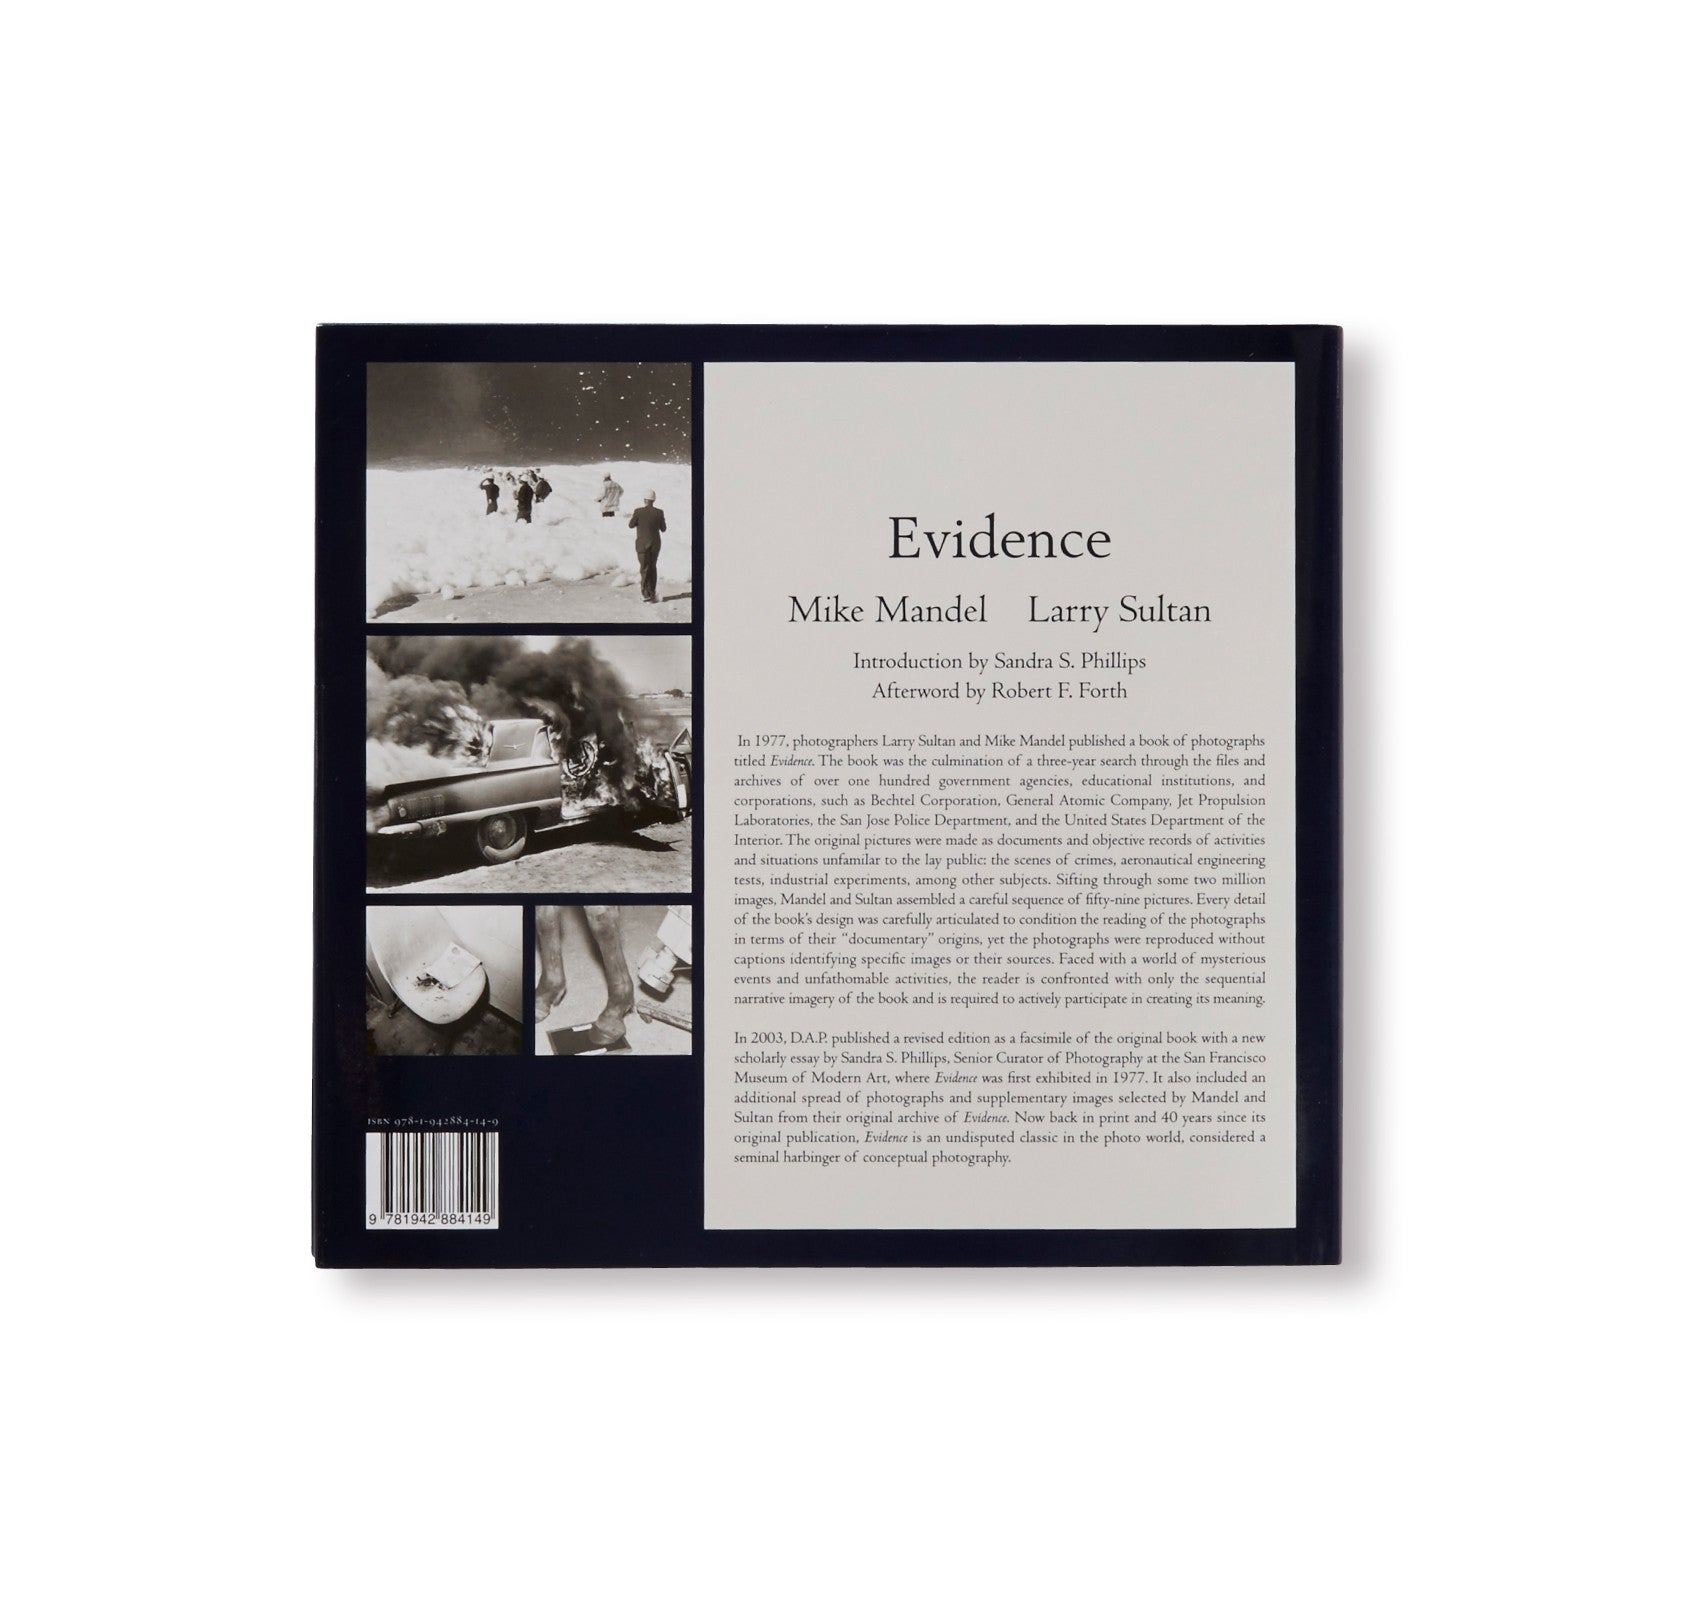 EVIDENCE by Larry Sultan & Mike Mandel [PRE-ORDER]